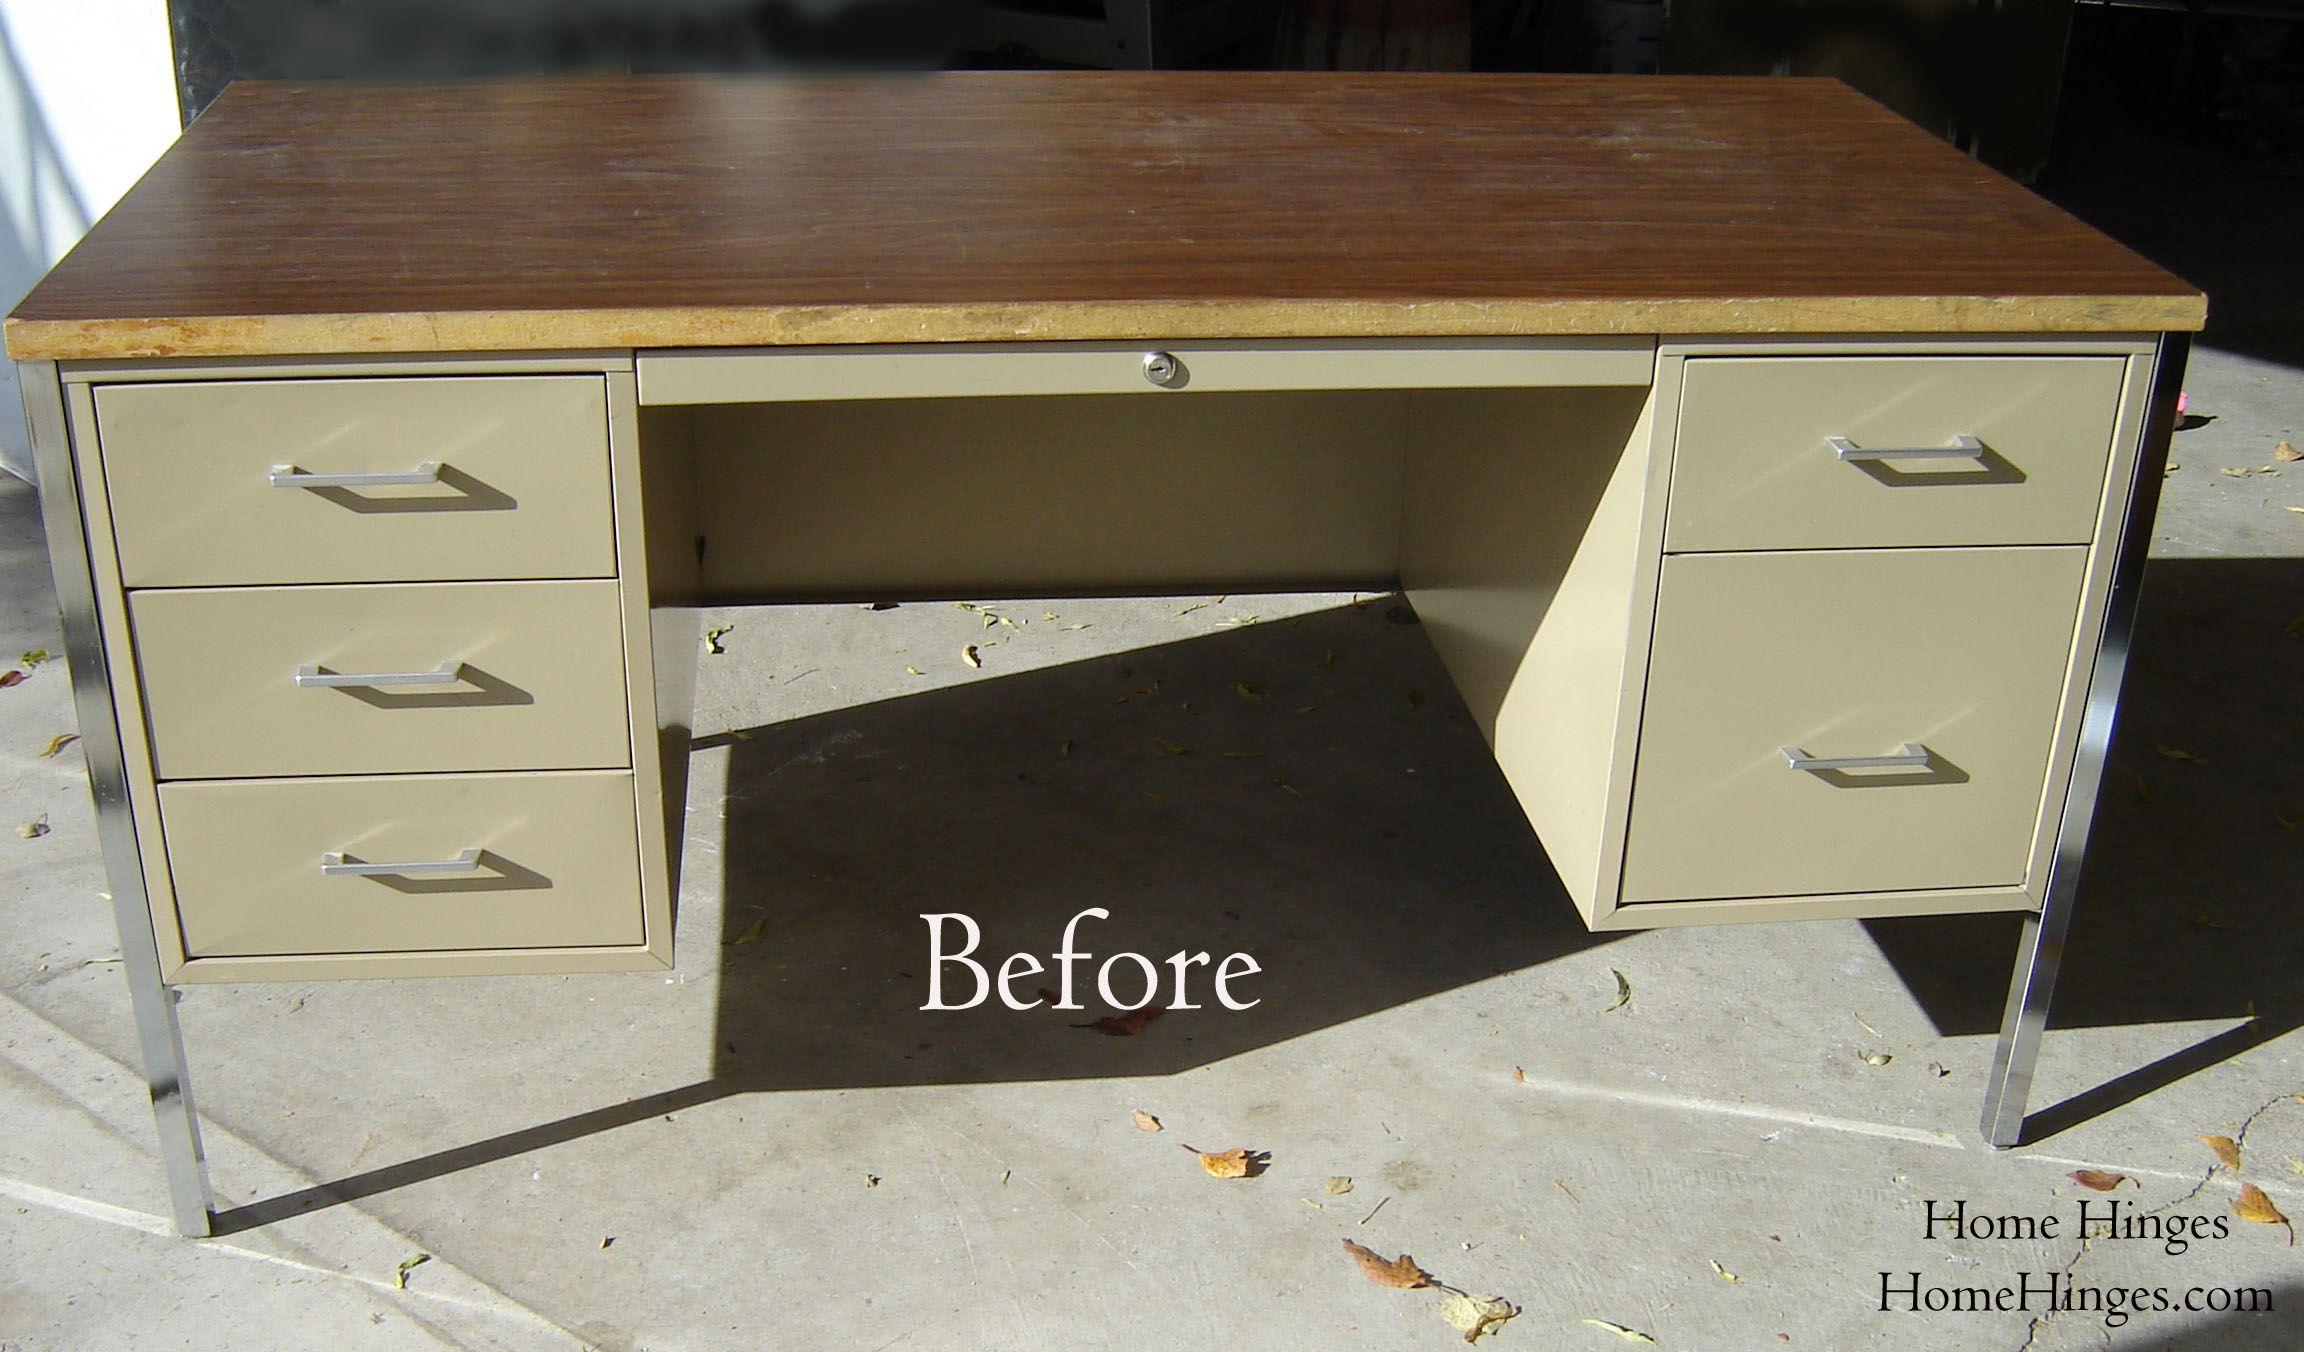 Metal Office Desk Makeover | The New Office Or Metal Desk Makeover (part 2)